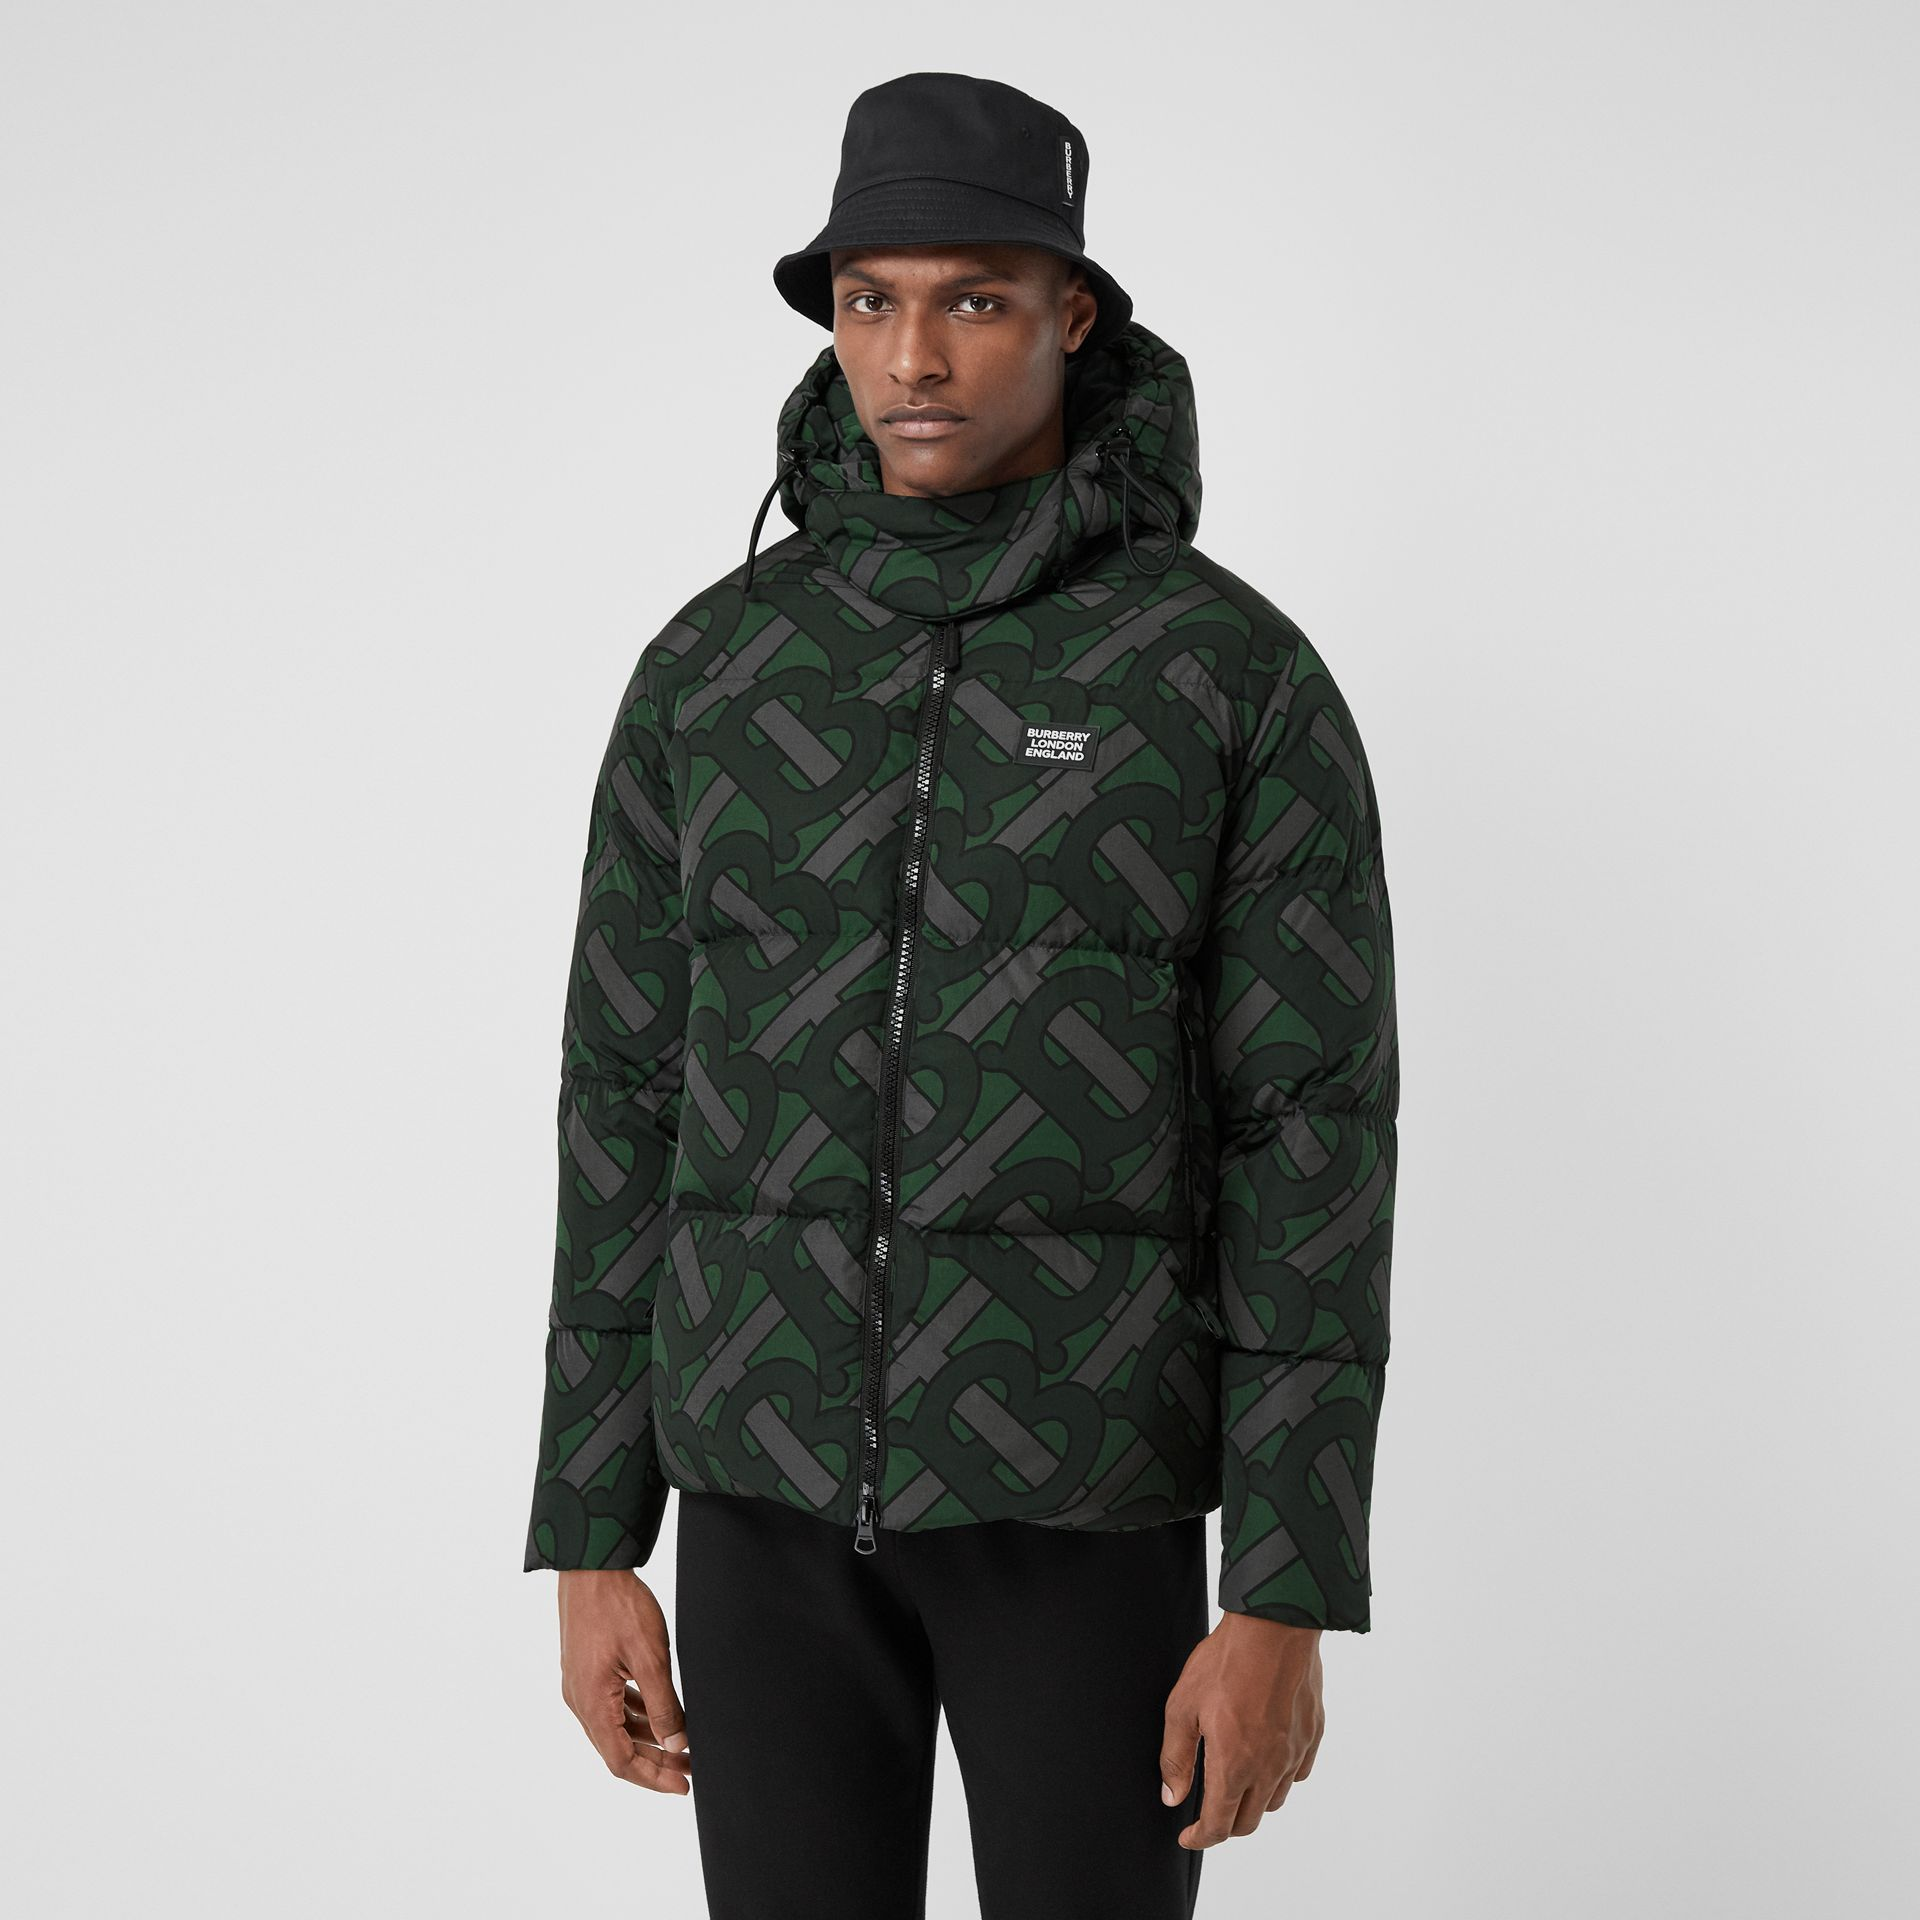 Monogram Print Puffer Jacket in Forest Green | Burberry - gallery image 5